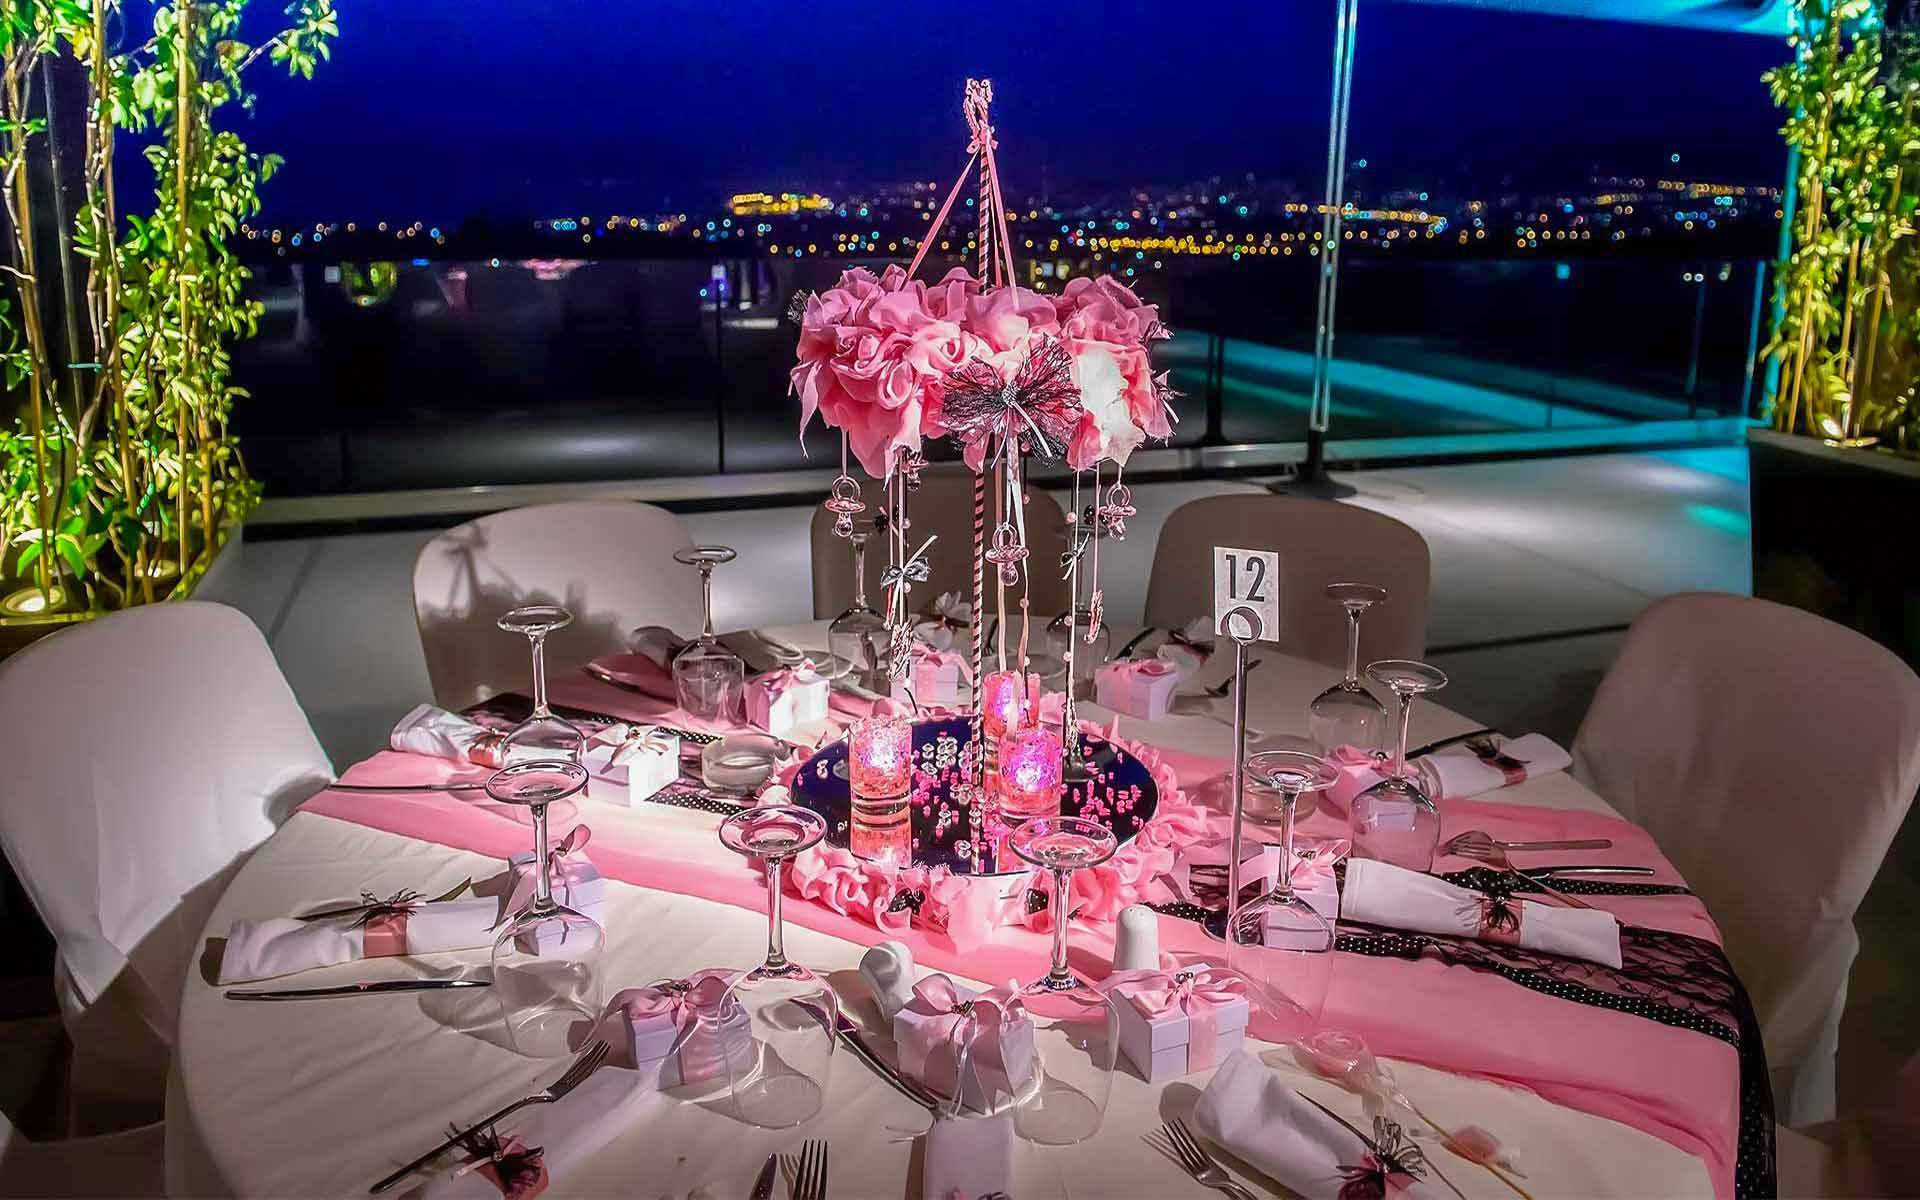 Baptism-Decoration-With-Central-Carousel-In-Shades-Of-Pink-And-Black